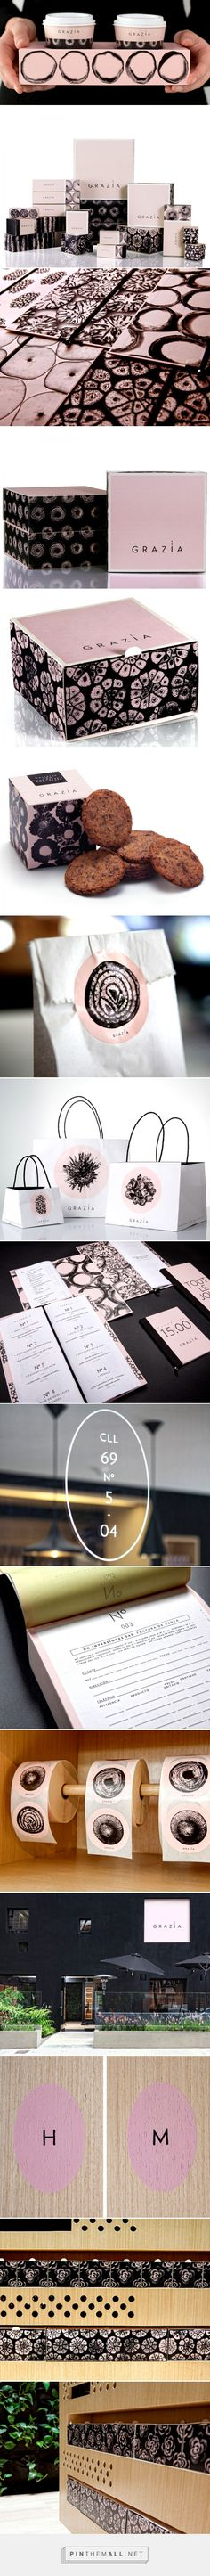 Grazia. Delicacies of Salt and Sweet. — The Dieline - Branding & Packaging - created via http://pinthemall.net (Mix Colors Design)